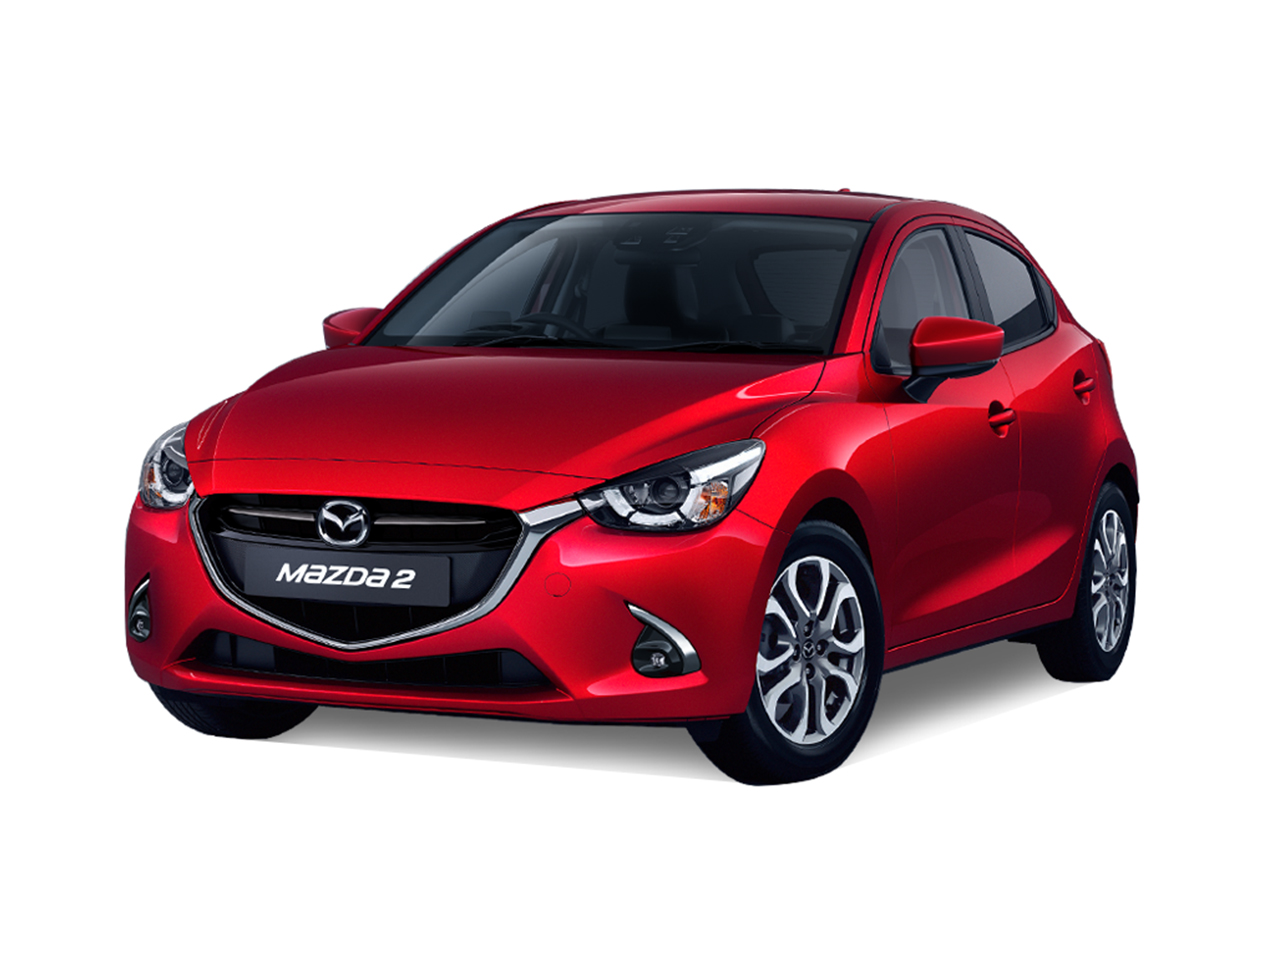 2017 mazda 2 hatchback prices in qatar gulf specs reviews for doha yallamotor. Black Bedroom Furniture Sets. Home Design Ideas